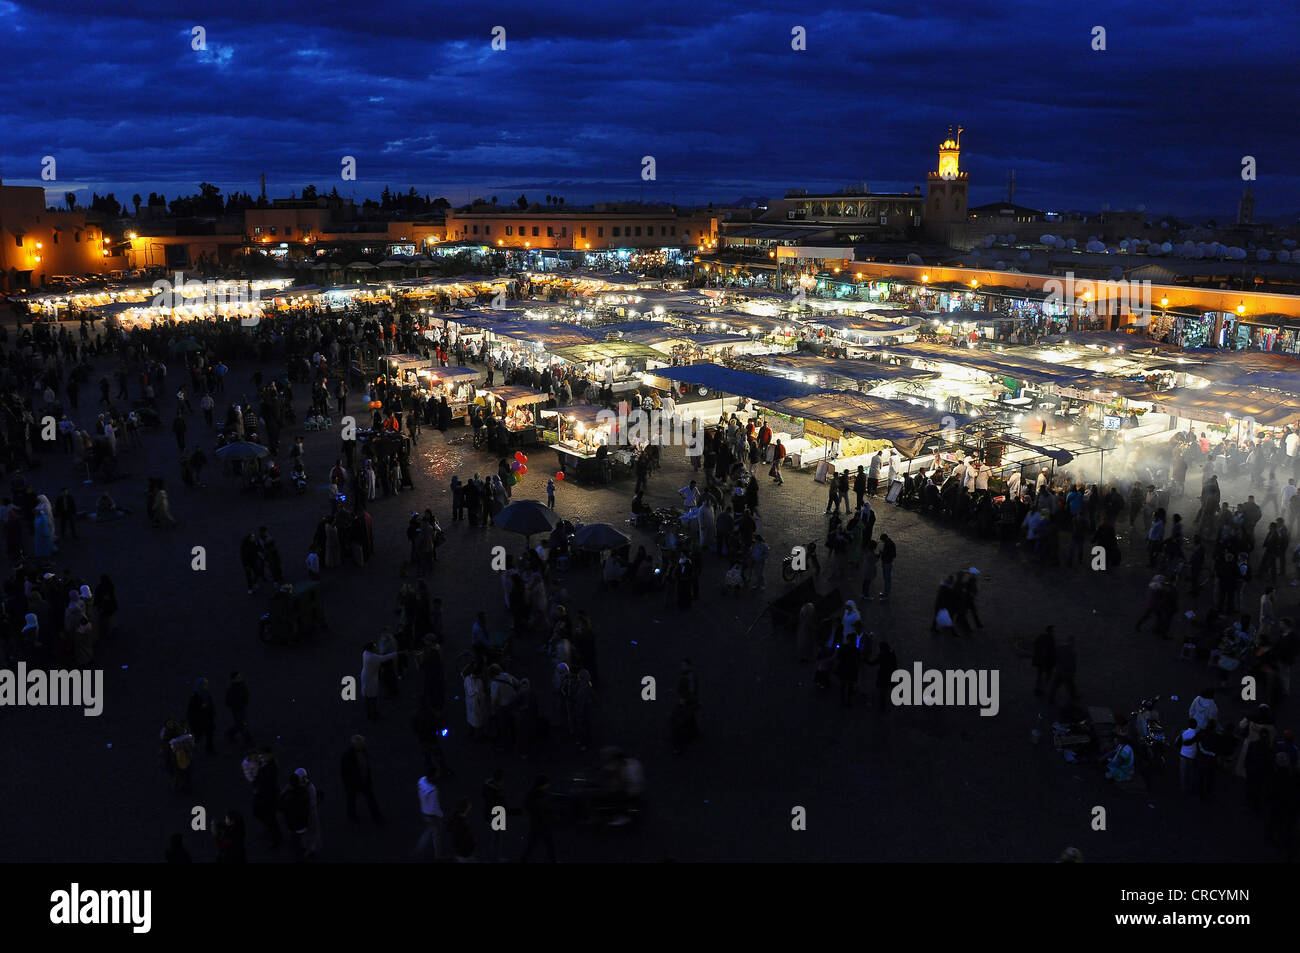 Stalls on Jemaa el-Fnaa Square, Place of the Hanged Man, during the blue hour, Marrakech, Morocco, Africa Stock Photo